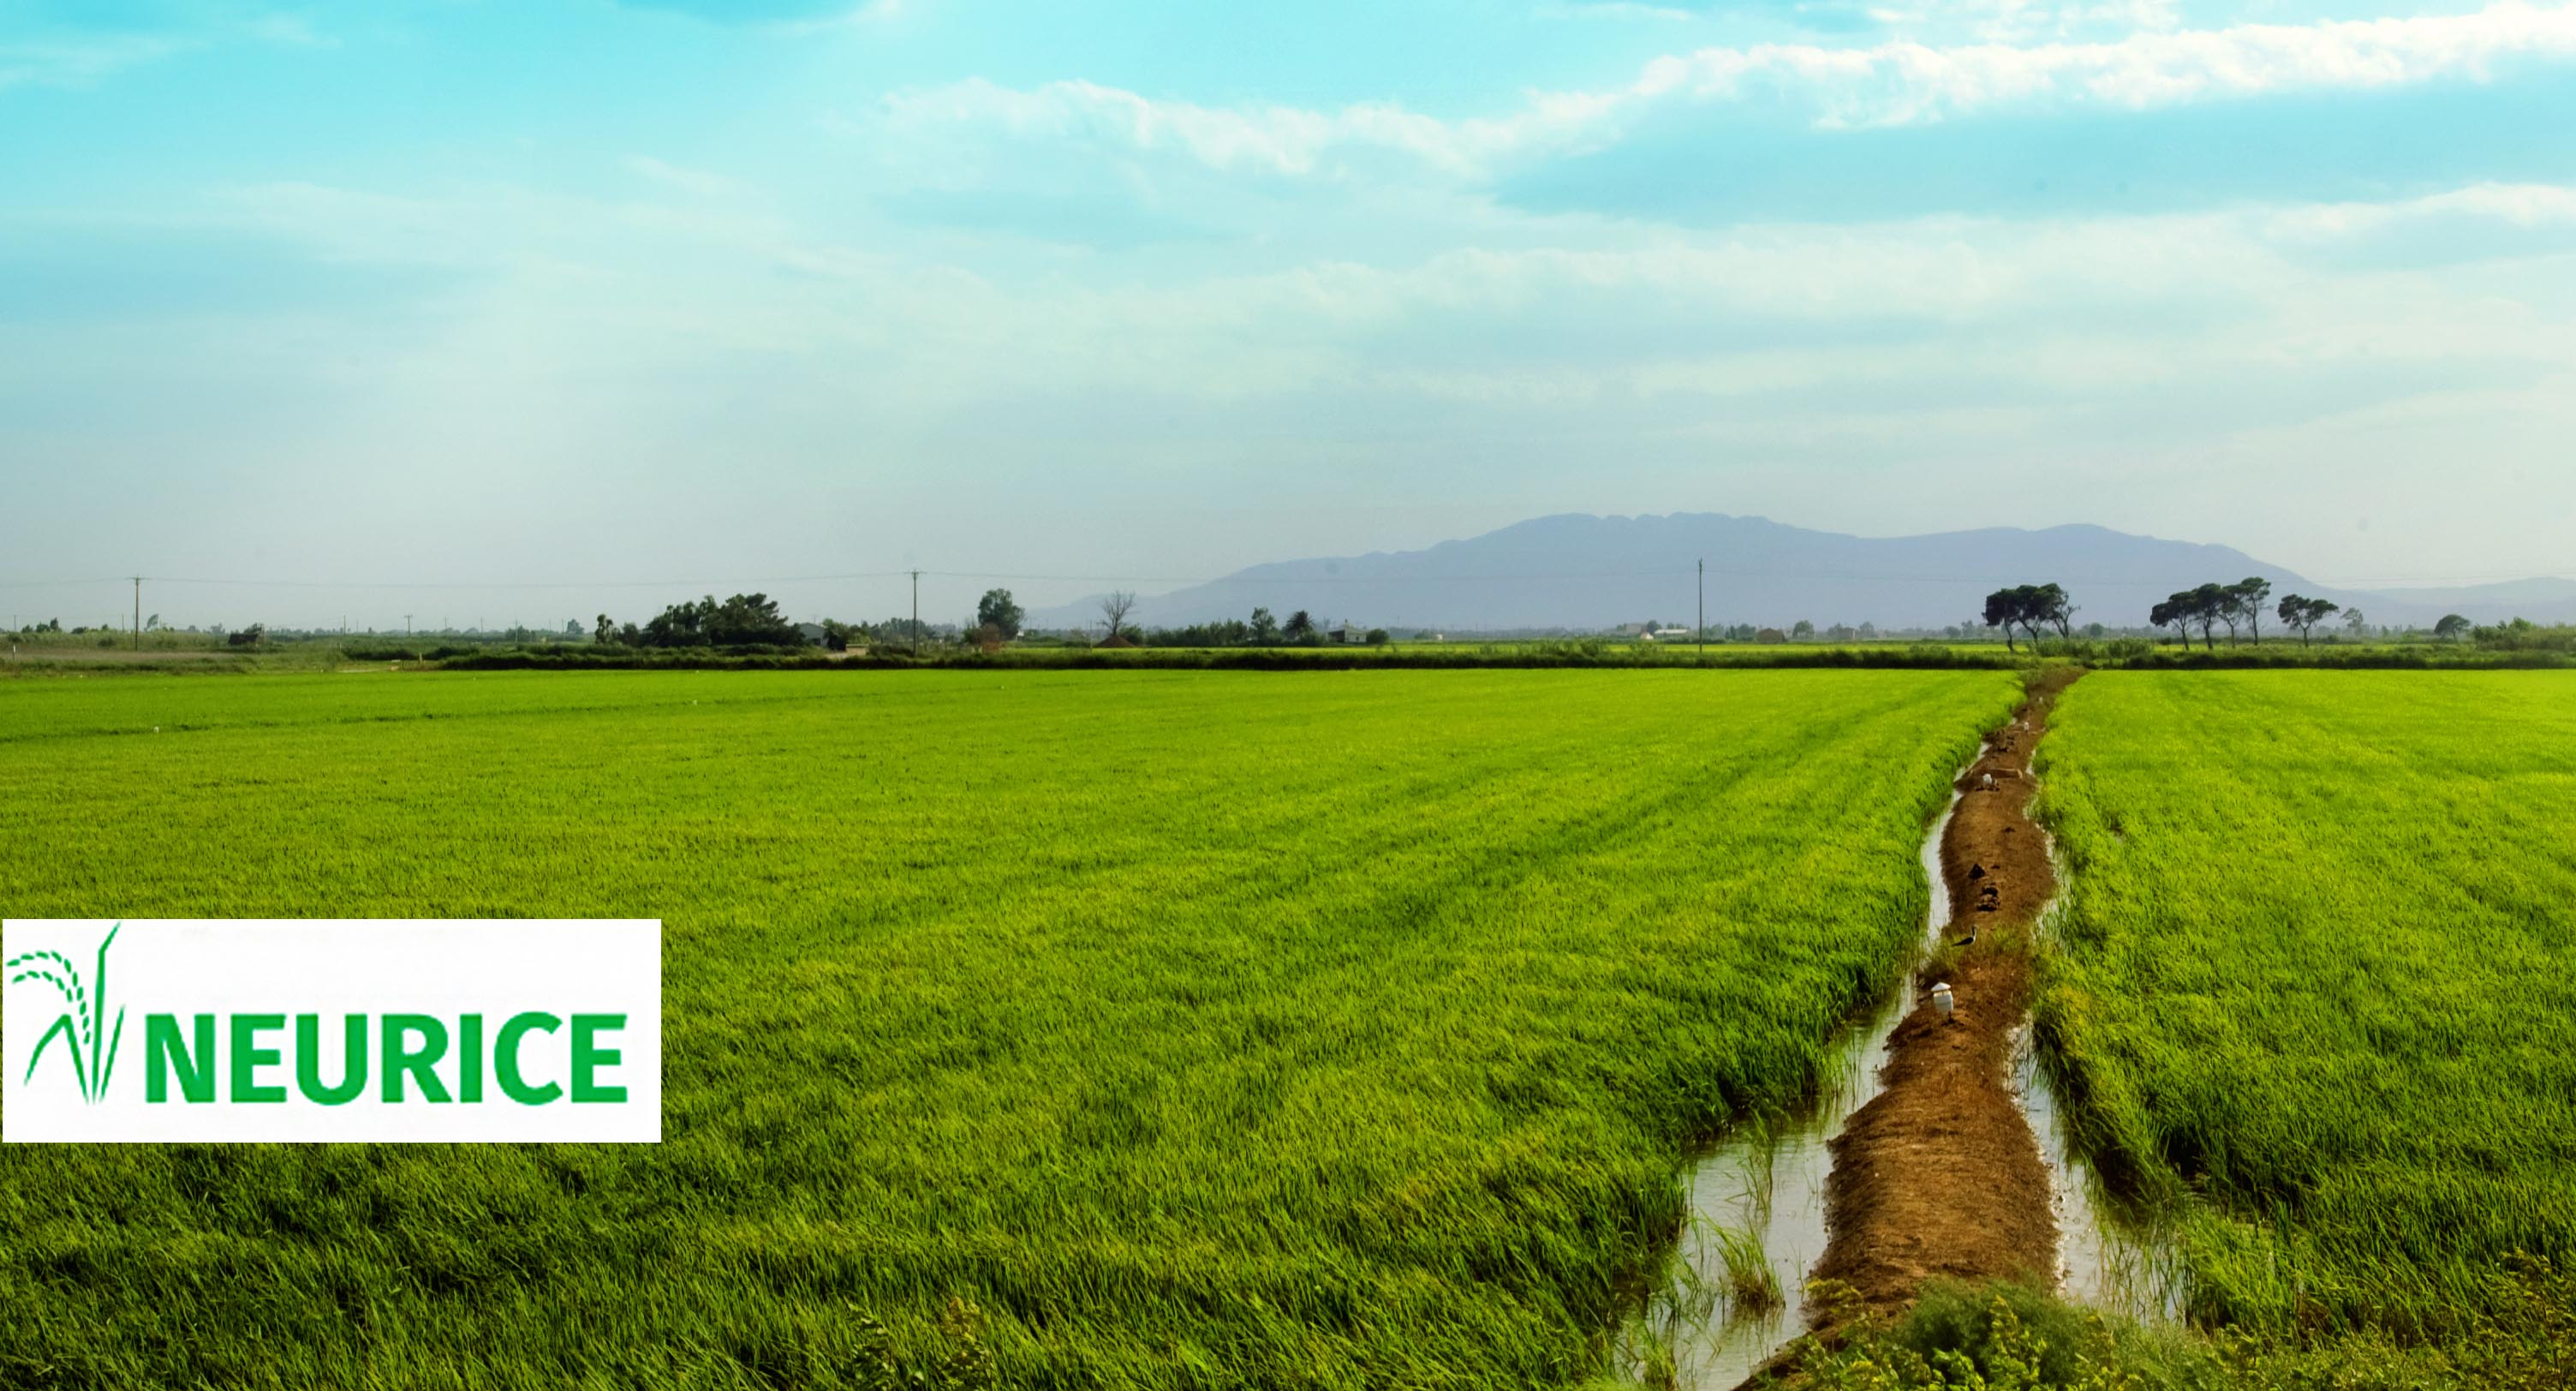 The Montsià Rice Chamber leads the agronomic part of the Neurice project